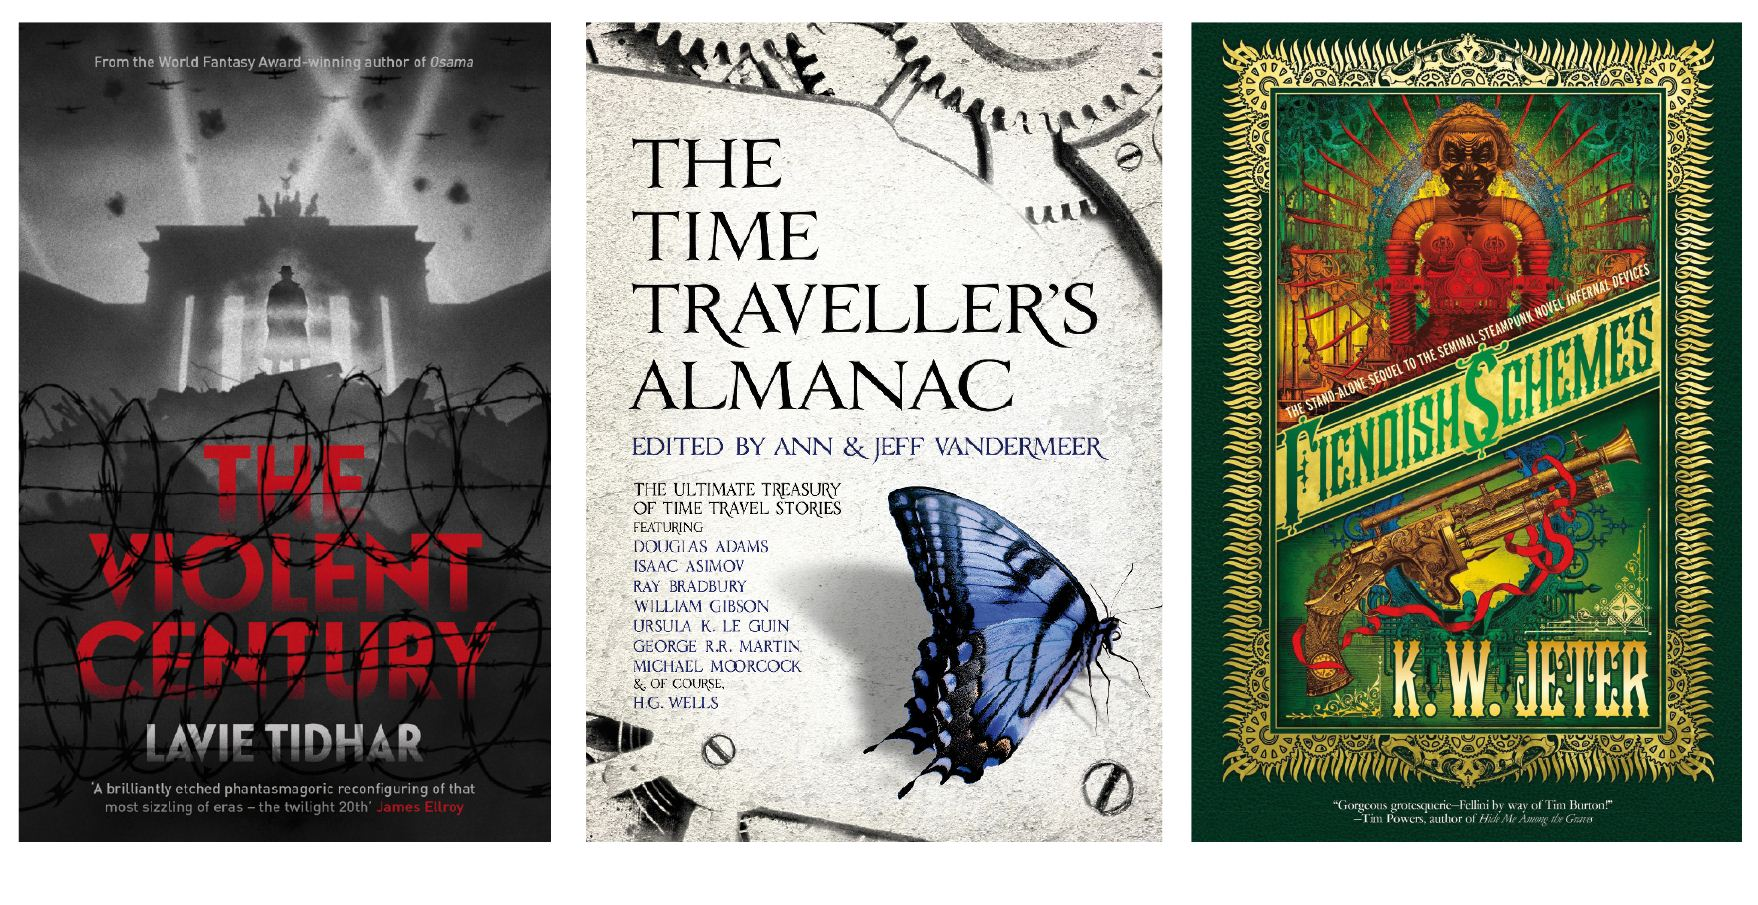 New time travel adventures include The Violent Century, The Time Traveller's Almanac and Fiendish Schemes (Pictures: supplied)